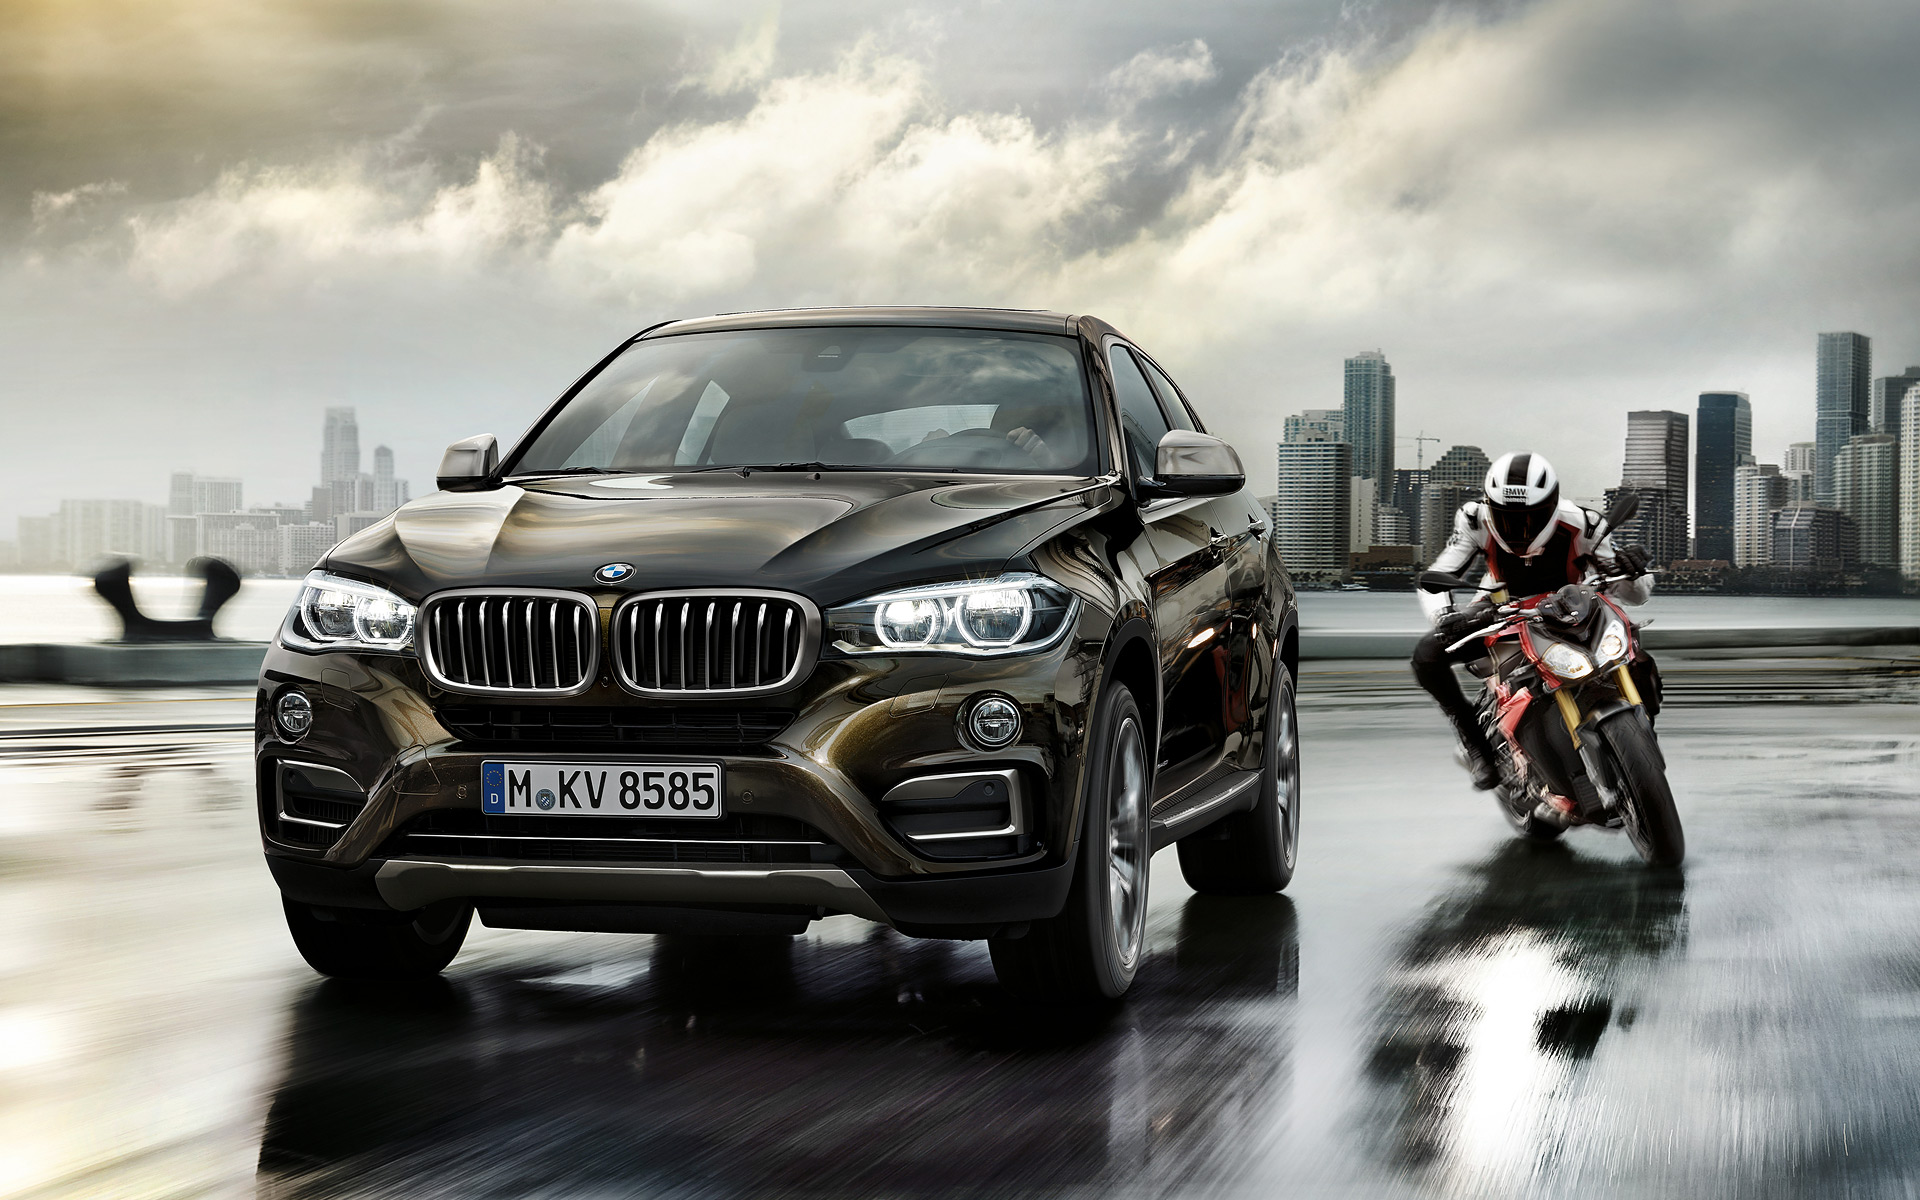 Bmw X6 Images Videos